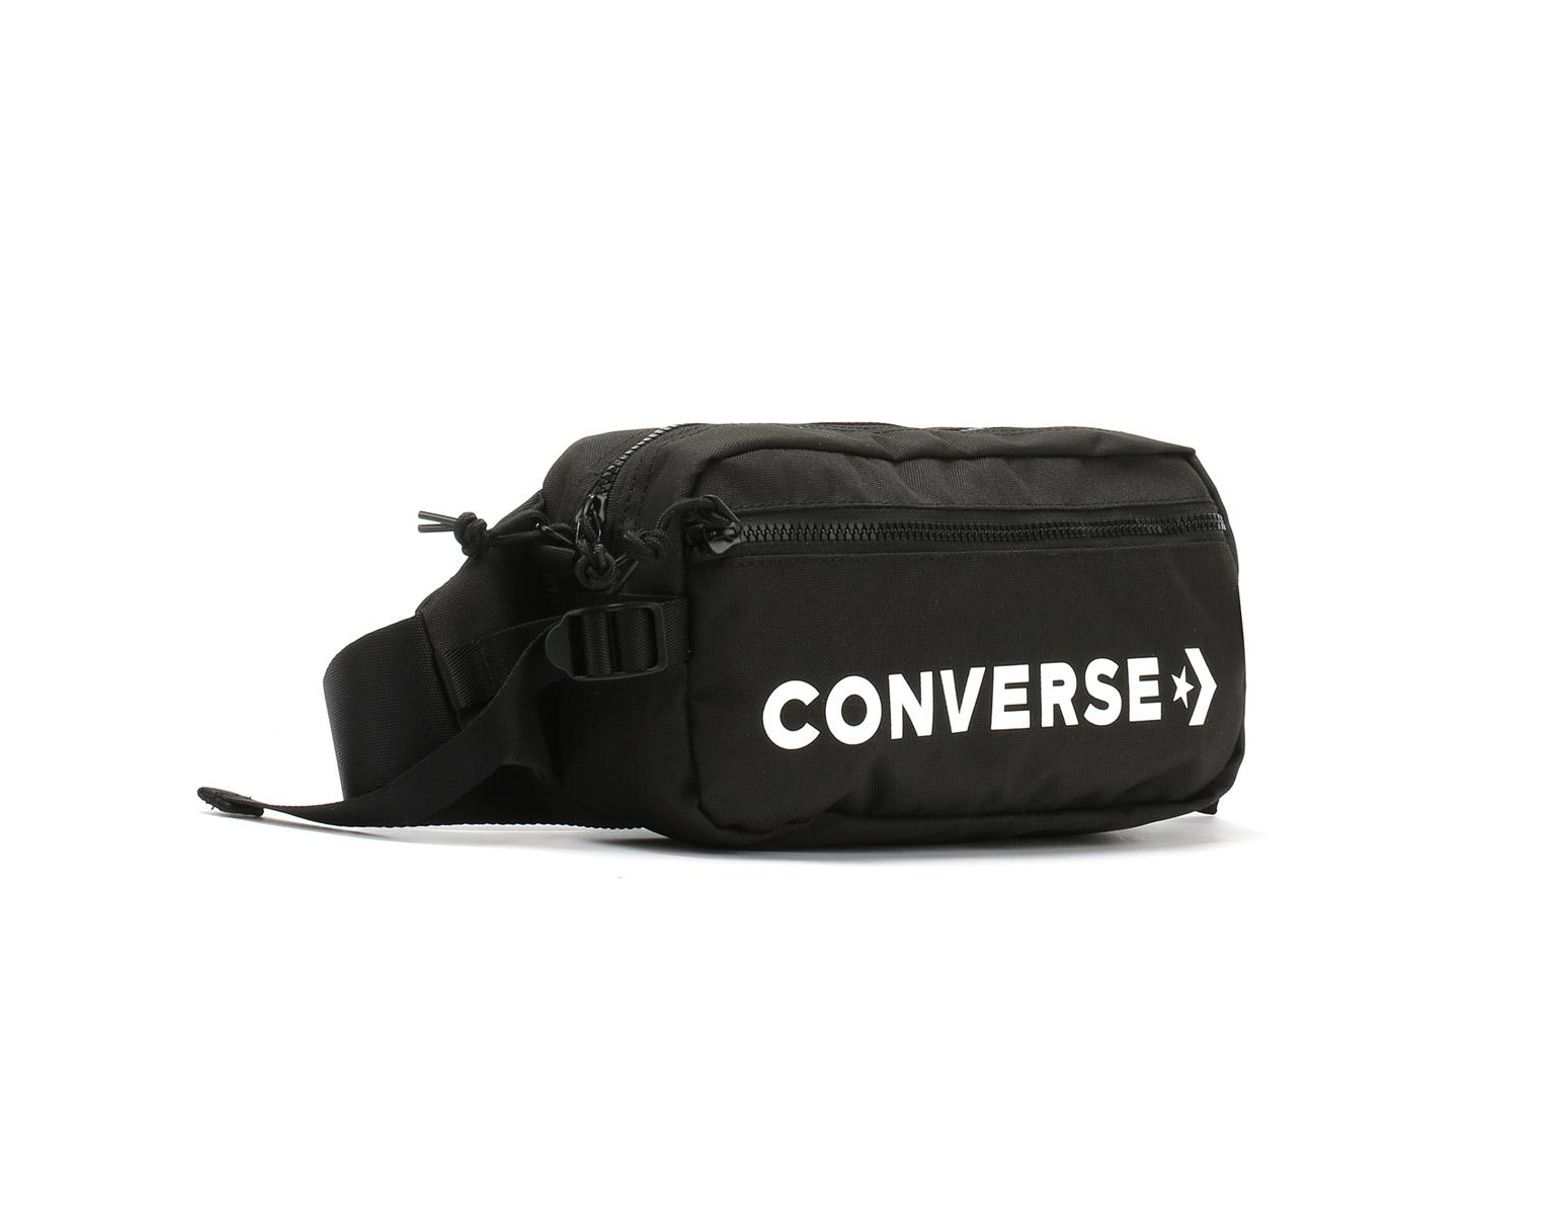 d5d0a9e156 Converse Black / White Fast Pack Sling Bag in Black for Men - Lyst